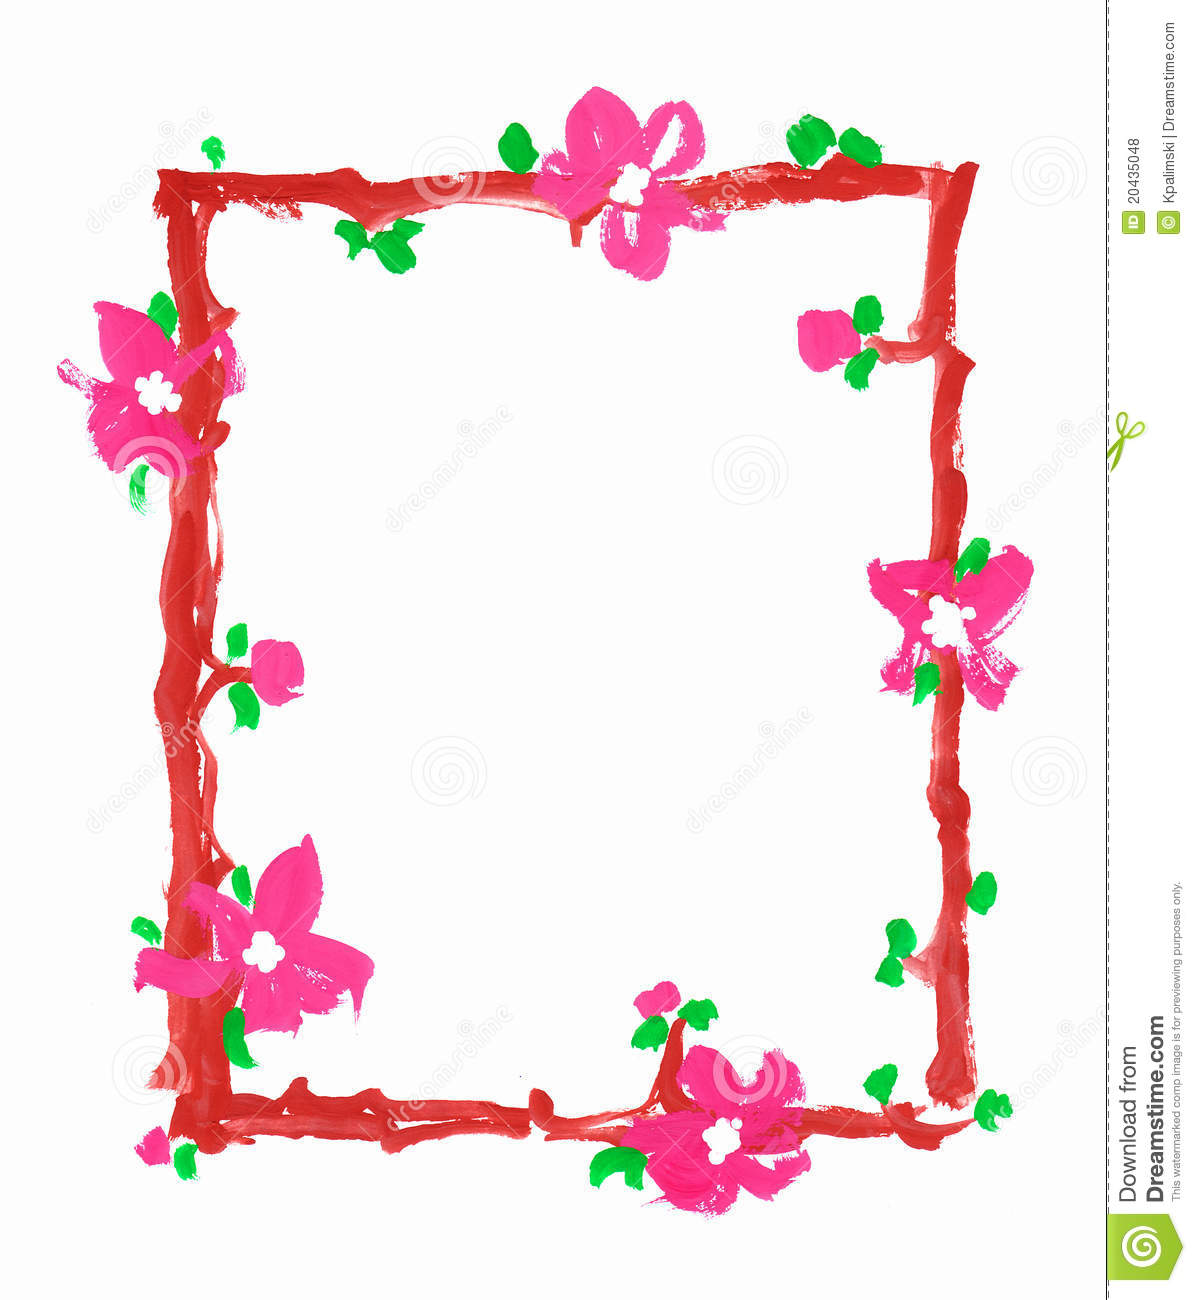 Flowers Frame Border Paper Paint Sketch Royalty Free Stock Photos ...